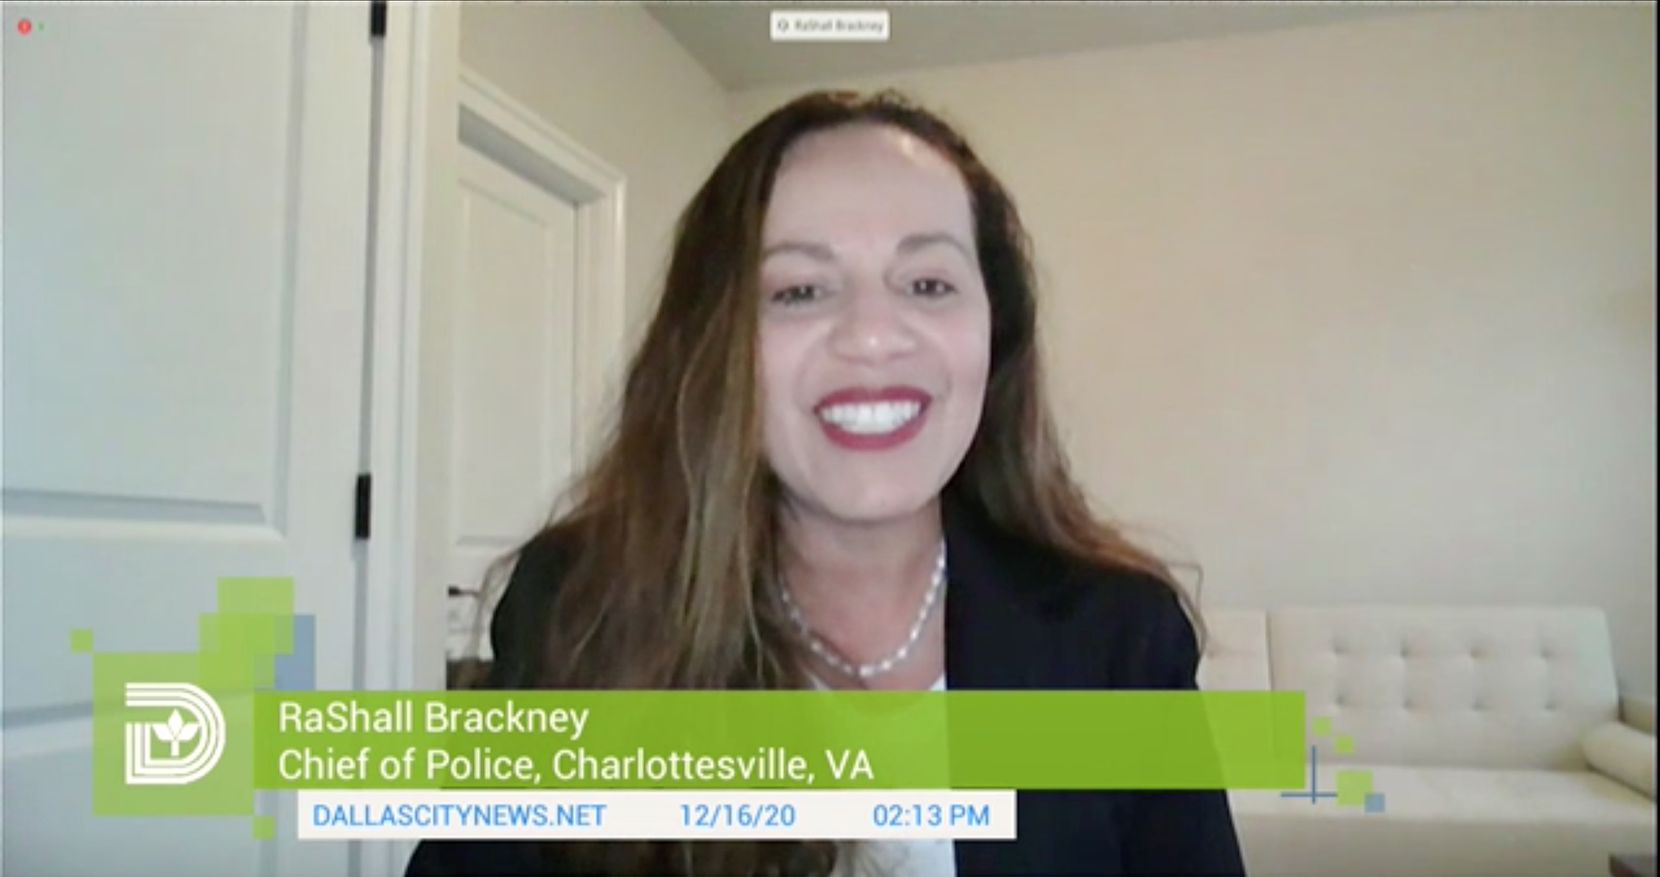 Dallas police chief candidate RaShall Brackney, chief of police in Charlottesville, Va. (City of Dallas video)